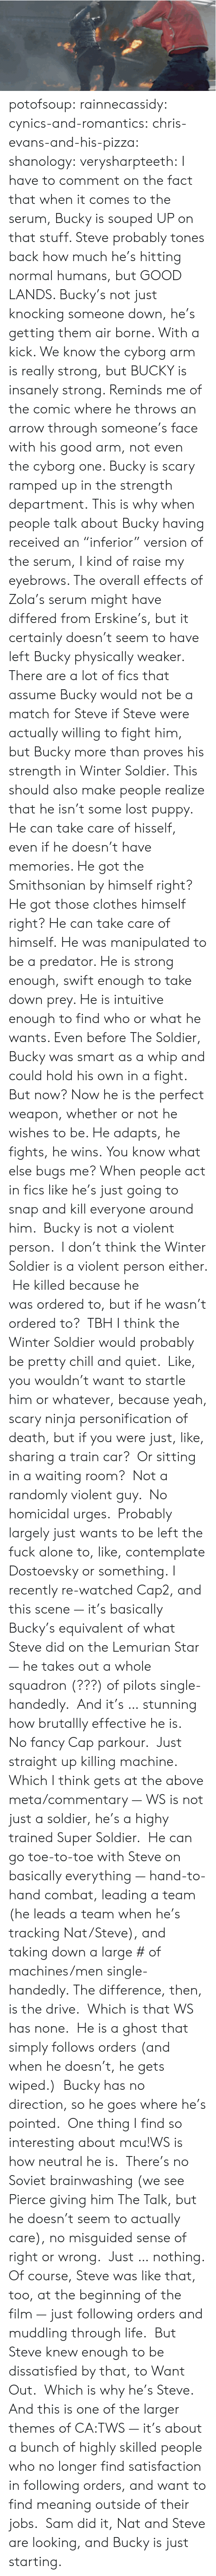 "Pierce: potofsoup: rainnecassidy:  cynics-and-romantics:  chris-evans-and-his-pizza:  shanology:  verysharpteeth:  I have to comment on the fact that when it comes to the serum, Bucky is souped UP on that stuff. Steve probably tones back how much he's hitting normal humans, but GOOD LANDS. Bucky's not just knocking someone down, he's getting them air borne. With a kick. We know the cyborg arm is really strong, but BUCKY is insanely strong. Reminds me of the comic where he throws an arrow through someone's face with his good arm, not even the cyborg one. Bucky is scary ramped up in the strength department.  This is why when people talk about Bucky having received an ""inferior"" version of the serum, I kind of raise my eyebrows. The overall effects of Zola's serum might have differed from Erskine's, but it certainly doesn't seem to have left Bucky physically weaker. There are a lot of fics that assume Bucky would not be a match for Steve if Steve were actually willing to fight him, but Bucky more than proves his strength in Winter Soldier.  This should also make people realize that he isn't some lost puppy. He can take care of hisself, even if he doesn't have memories. He got the Smithsonian by himself right? He got those clothes himself right? He can take care of himself.  He was manipulated to be a predator. He is strong enough, swift enough to take down prey. He is intuitive enough to find who or what he wants. Even before The Soldier, Bucky was smart as a whip and could hold his own in a fight. But now? Now he is the perfect weapon, whether or not he wishes to be. He adapts, he fights, he wins.  You know what else bugs me? When people act in fics like he's just going to snap and kill everyone around him.  Bucky is not a violent person.  I don't think the Winter Soldier is a violent person either.  He killed because he was ordered to, but if he wasn't ordered to?  TBH I think the Winter Soldier would probably be pretty chill and quiet.  Like, you wouldn't want to startle him or whatever, because yeah, scary ninja personification of death, but if you were just, like, sharing a train car?  Or sitting in a waiting room?  Not a randomly violent guy.  No homicidal urges.  Probably largely just wants to be left the fuck alone to, like, contemplate Dostoevsky or something.  I recently re-watched Cap2, and this scene — it's basically Bucky's equivalent of what Steve did on the Lemurian Star — he takes out a whole squadron (???) of pilots single-handedly.  And it's … stunning how brutallly effective he is.  No fancy Cap parkour.  Just straight up killing machine. Which I think gets at the above meta/commentary — WS is not just a soldier, he's a highy trained Super Soldier.  He can go toe-to-toe with Steve on basically everything — hand-to-hand combat, leading a team (he leads a team when he's tracking Nat/Steve), and taking down a large # of machines/men single-handedly. The difference, then, is the drive.  Which is that WS has none.  He is a ghost that simply follows orders (and when he doesn't, he gets wiped.)  Bucky has no direction, so he goes where he's pointed.  One thing I find so interesting about mcu!WS is how neutral he is.  There's no Soviet brainwashing (we see Pierce giving him The Talk, but he doesn't seem to actually care), no misguided sense of right or wrong.  Just … nothing. Of course, Steve was like that, too, at the beginning of the film — just following orders and muddling through life.  But Steve knew enough to be dissatisfied by that, to Want Out.  Which is why he's Steve. And this is one of the larger themes of CA:TWS — it's about a bunch of highly skilled people who no longer find satisfaction in following orders, and want to find meaning outside of their jobs.  Sam did it, Nat and Steve are looking, and Bucky is just starting."